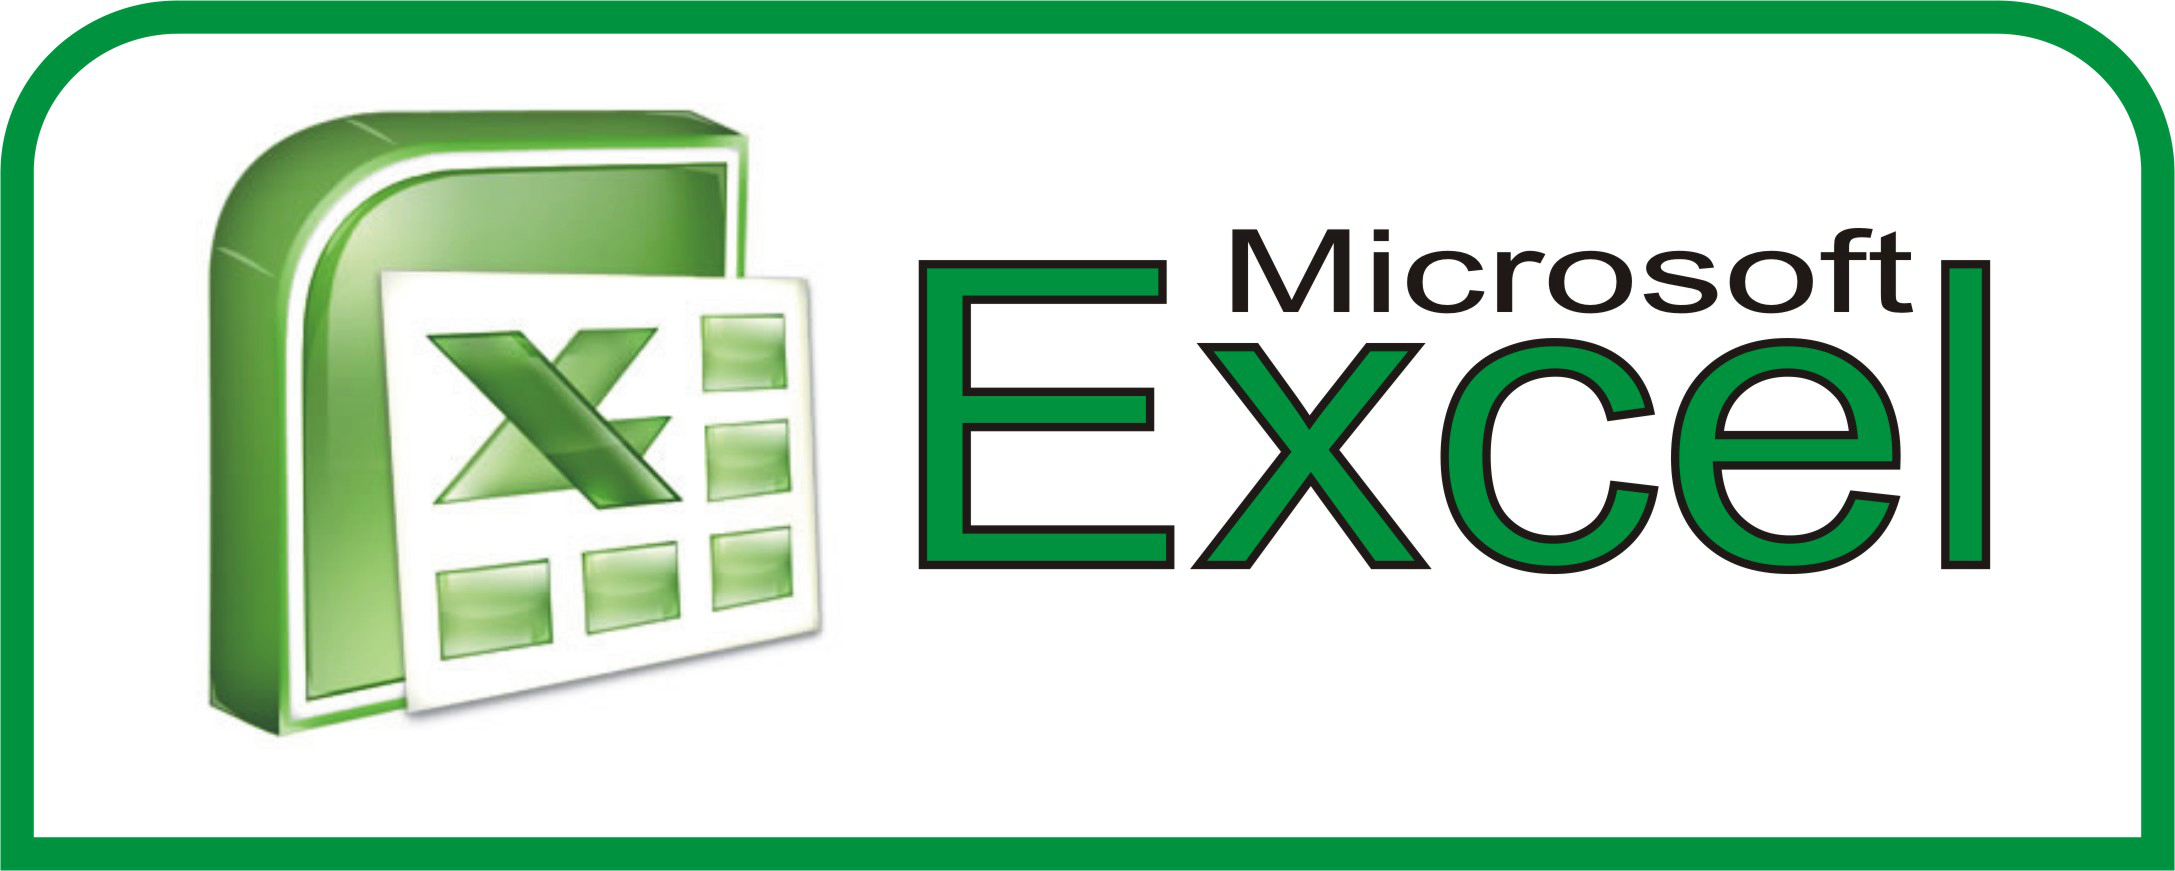 Ediblewildsus  Inspiring  Excel Shortcuts You Probably Didnt Know About  Techdissected With Fascinating Excel  Nested If Besides Creating A Spreadsheet In Excel Furthermore Looking For Duplicates In Excel With Comely Excel  Books Also Freeze Row Excel  In Addition Scatter Chart In Excel And Ctrl Shift Excel As Well As Replace Character In Excel Additionally Find Last Row In Excel Vba From Techdissectedcom With Ediblewildsus  Fascinating  Excel Shortcuts You Probably Didnt Know About  Techdissected With Comely Excel  Nested If Besides Creating A Spreadsheet In Excel Furthermore Looking For Duplicates In Excel And Inspiring Excel  Books Also Freeze Row Excel  In Addition Scatter Chart In Excel From Techdissectedcom